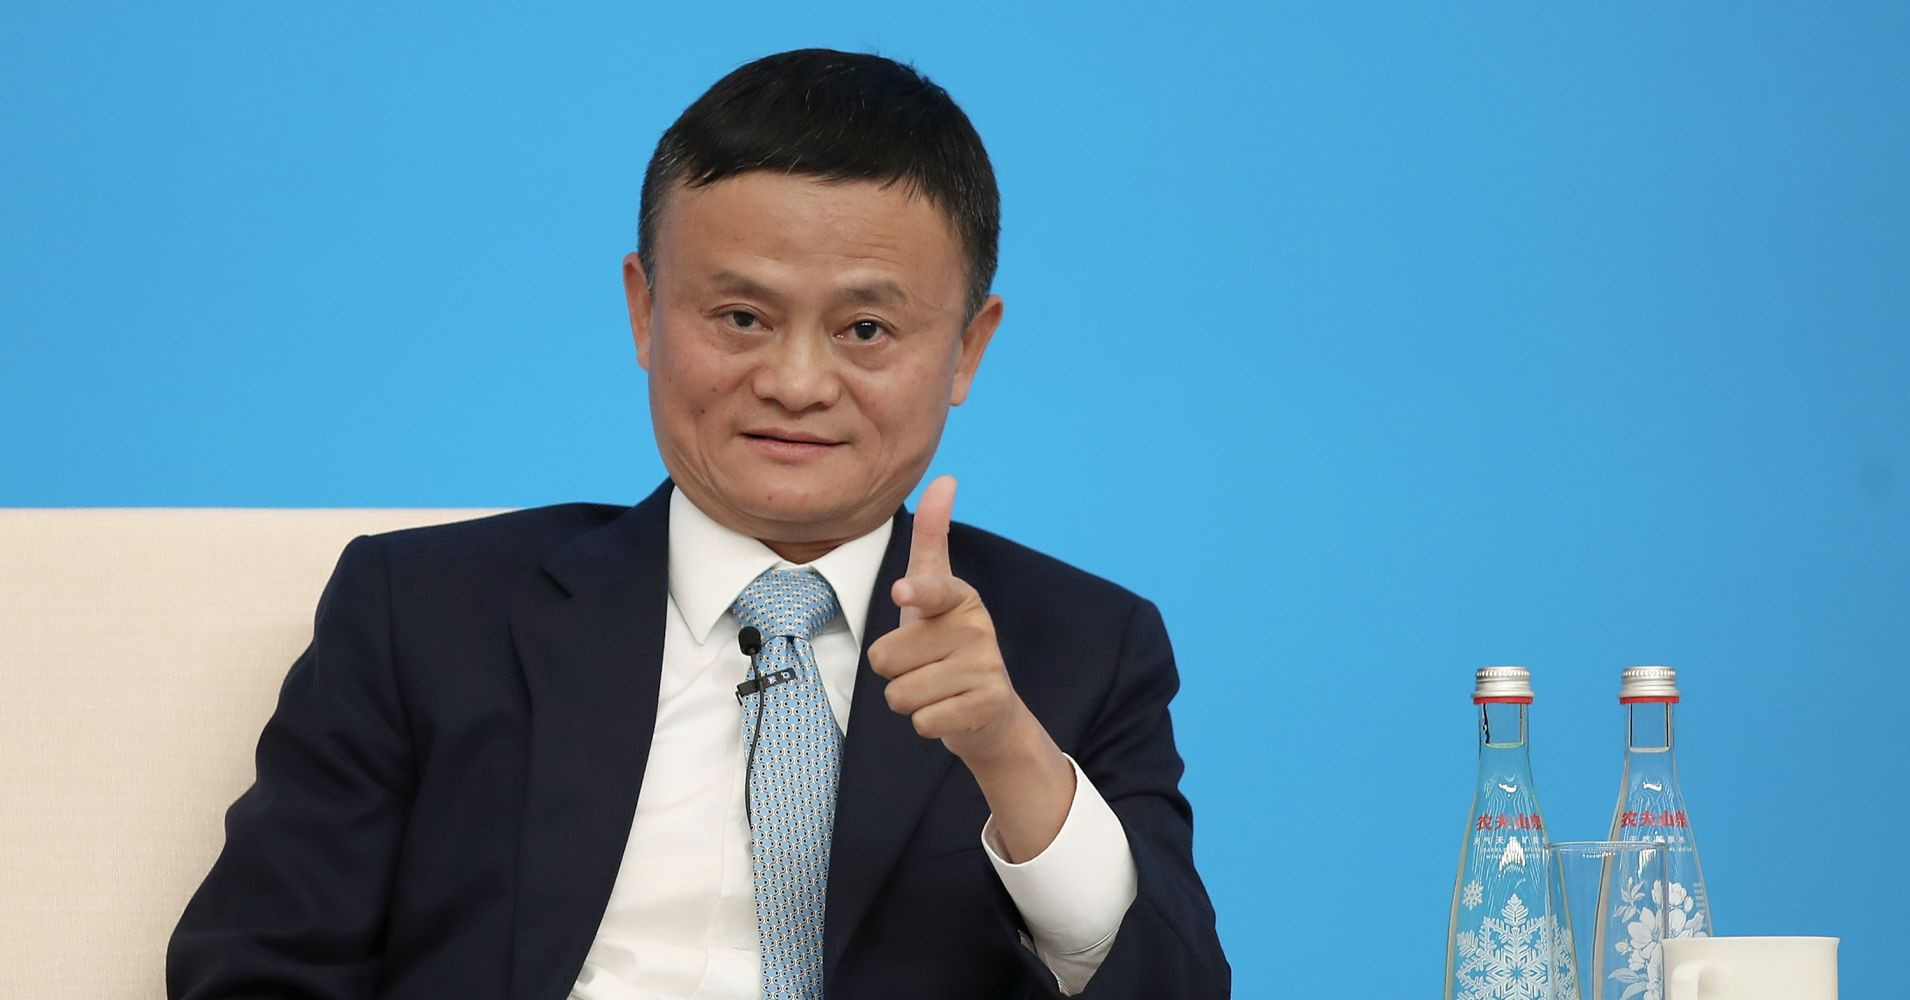 How Jack Ma Led Alibaba Through The 2003 SARS Outbreak